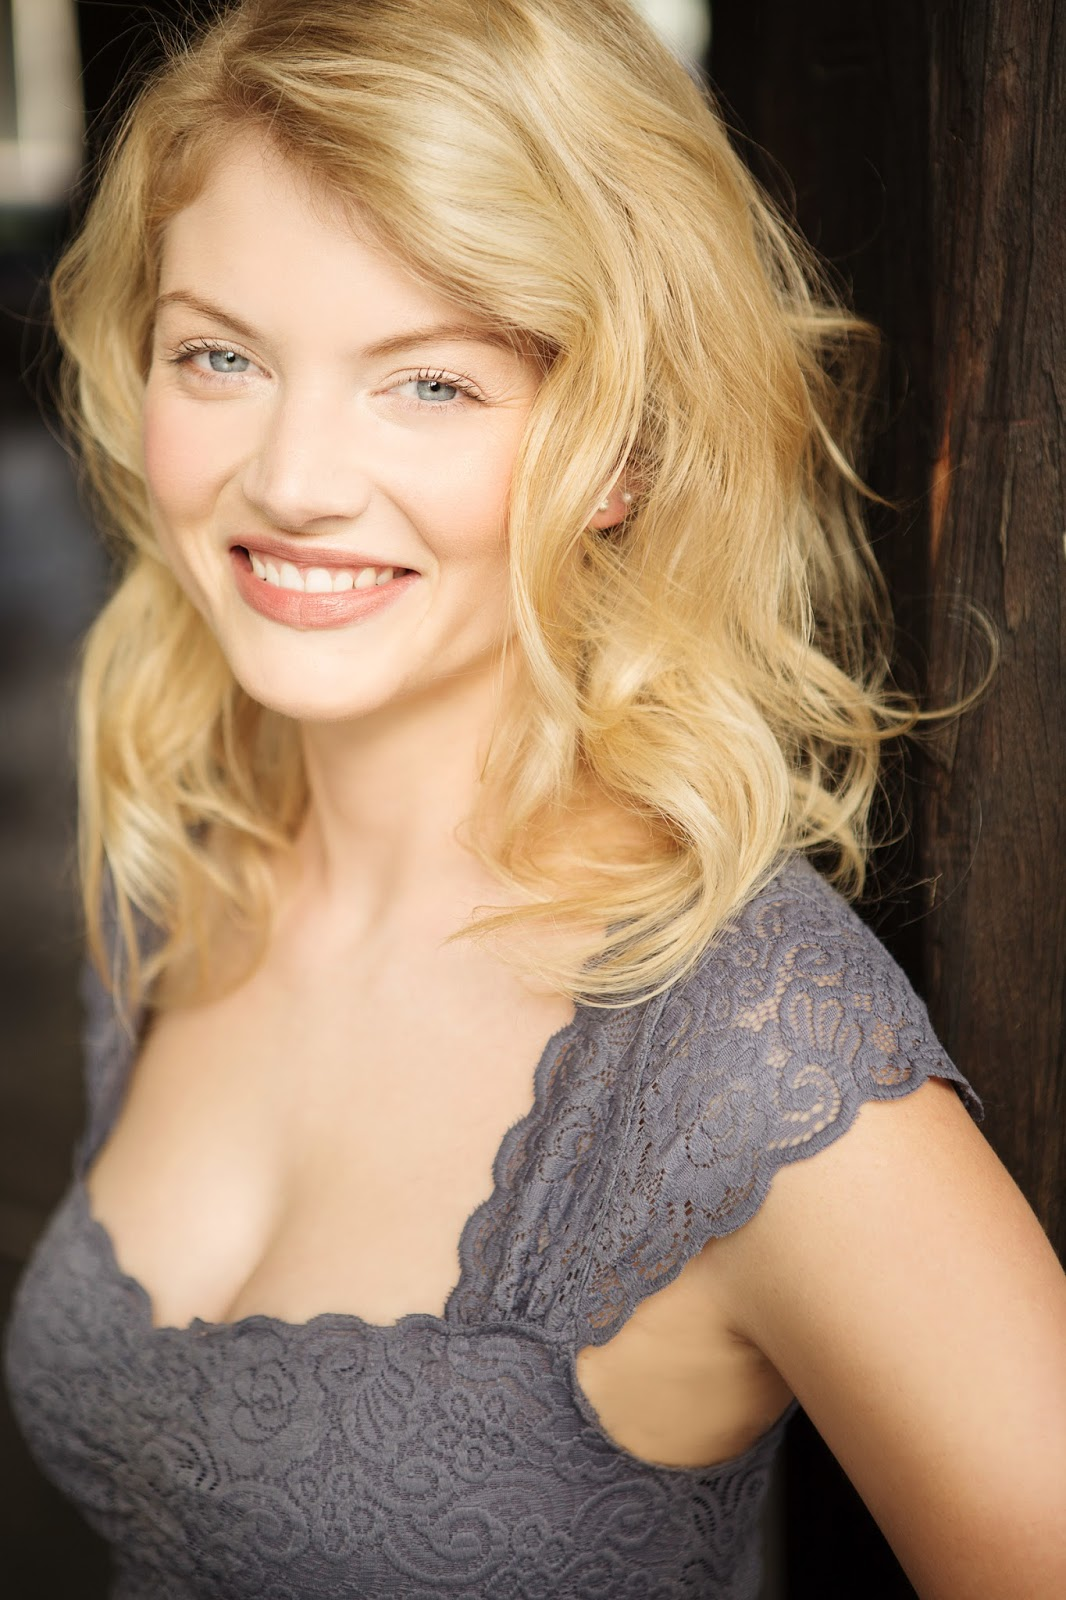 cariba heine how tall